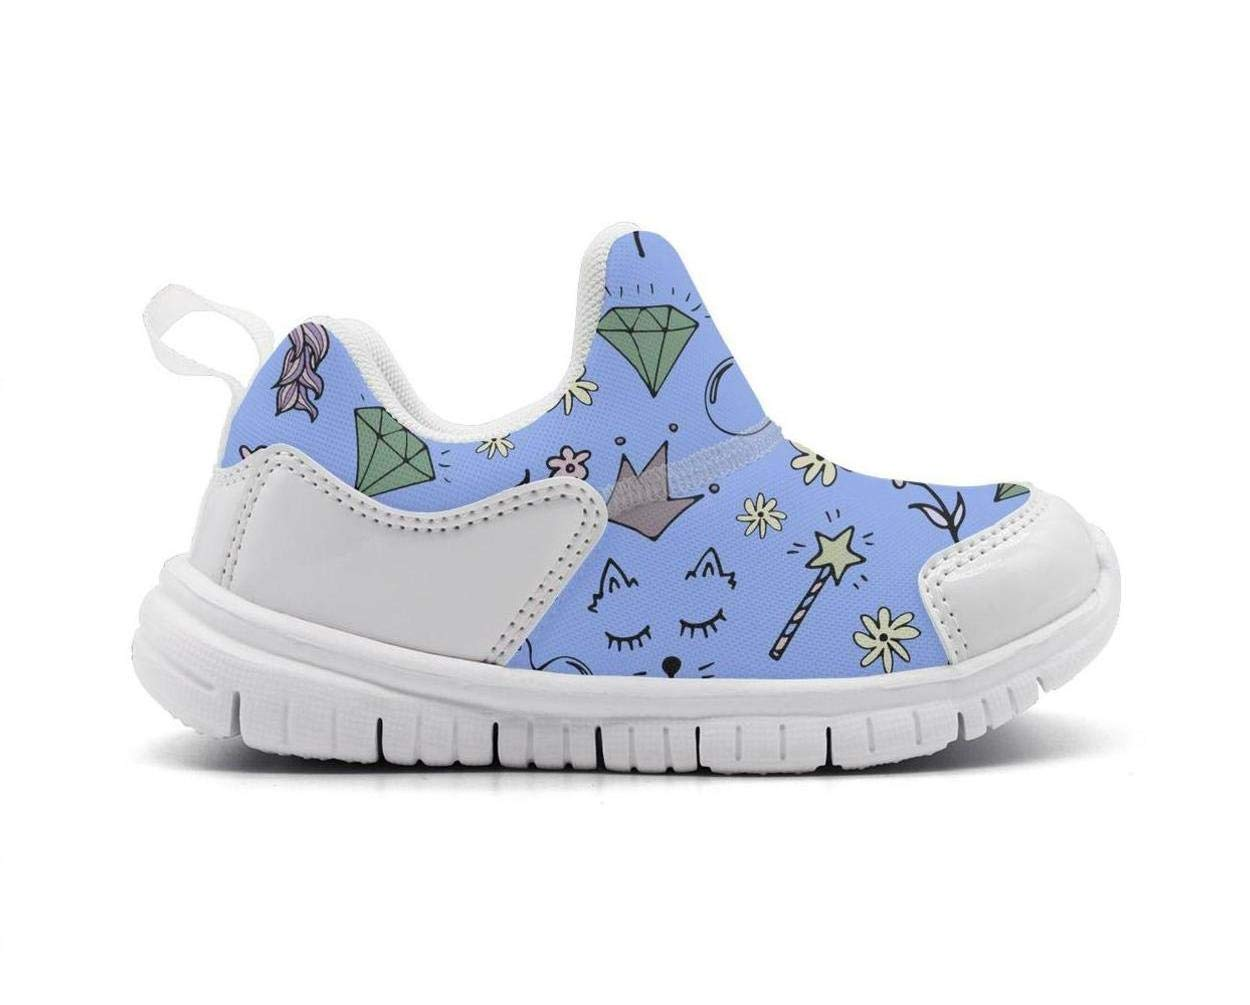 ONEYUAN Children Unicorn Diamond and Cat Kid Casual Lightweight Sport Shoes Sneakers Walking Athletic Shoes